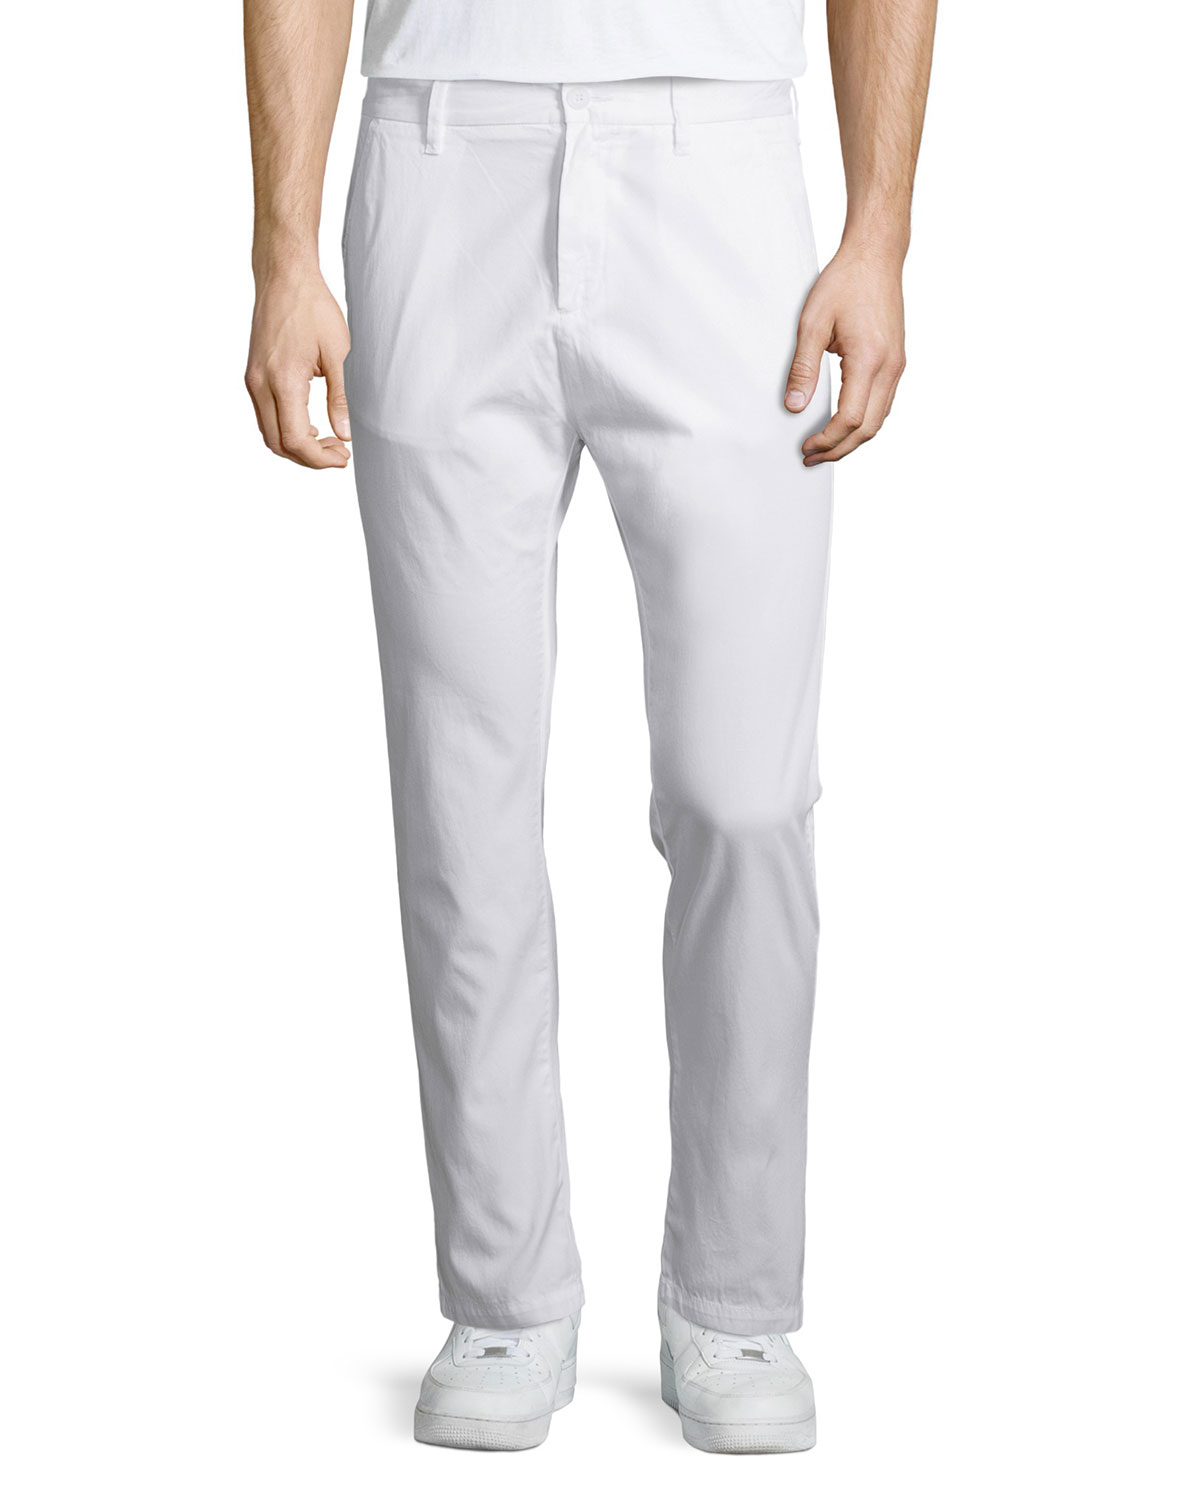 Find great deals on eBay for white slim fit dress pants. Shop with confidence.